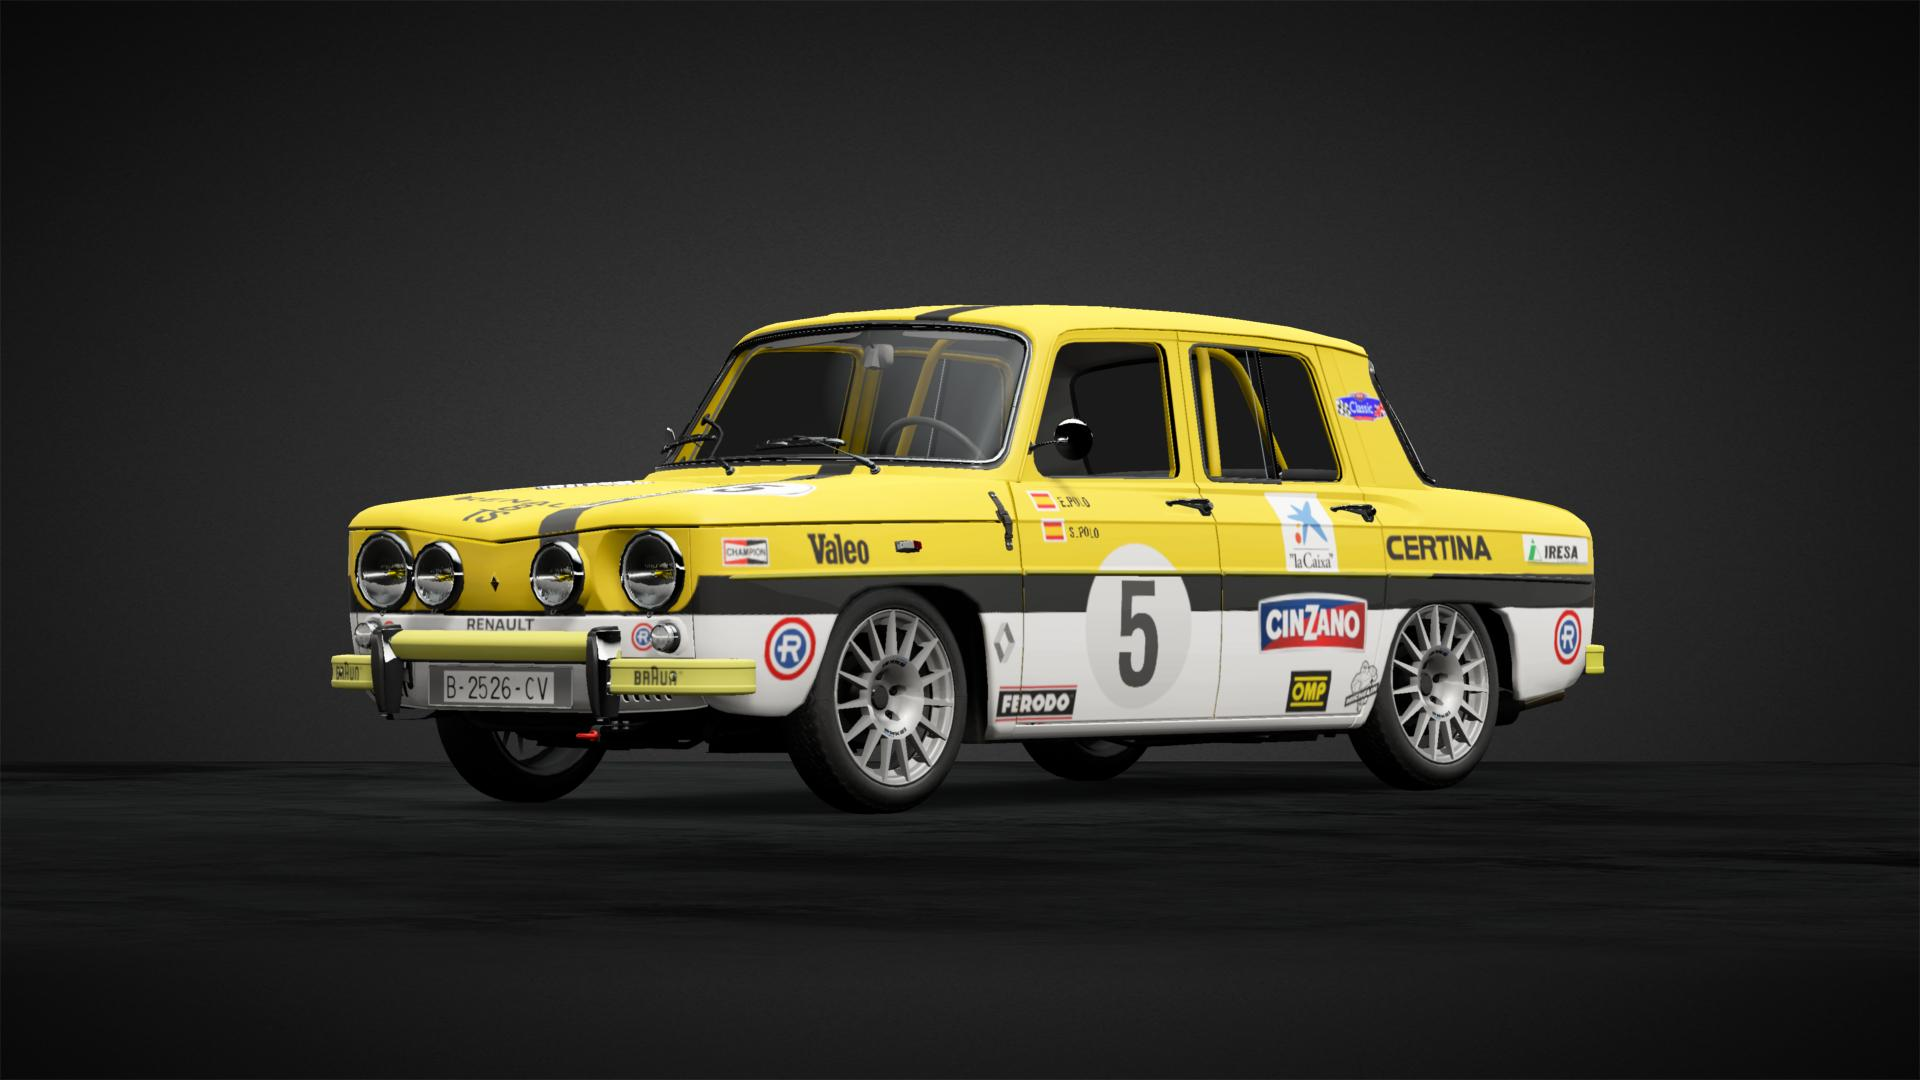 Renault 8 Ts Amarillo Car Livery By Bypoliccyo23 Community Gran Turismo Sport